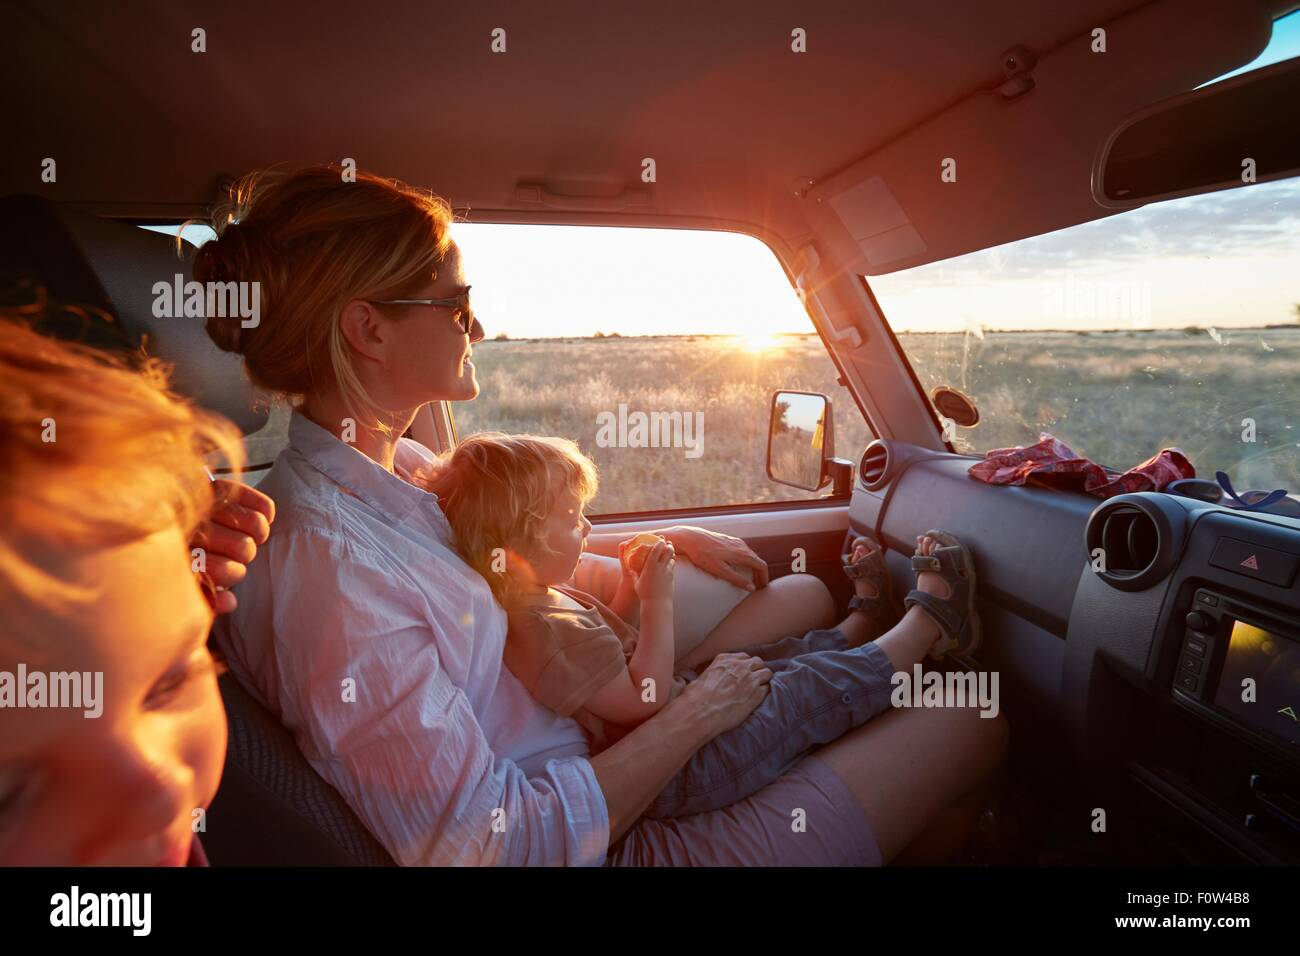 Mother and sons travelling in vehicle, Nxai Pan National Park, Kalahari Desert, Africa - Stock Image